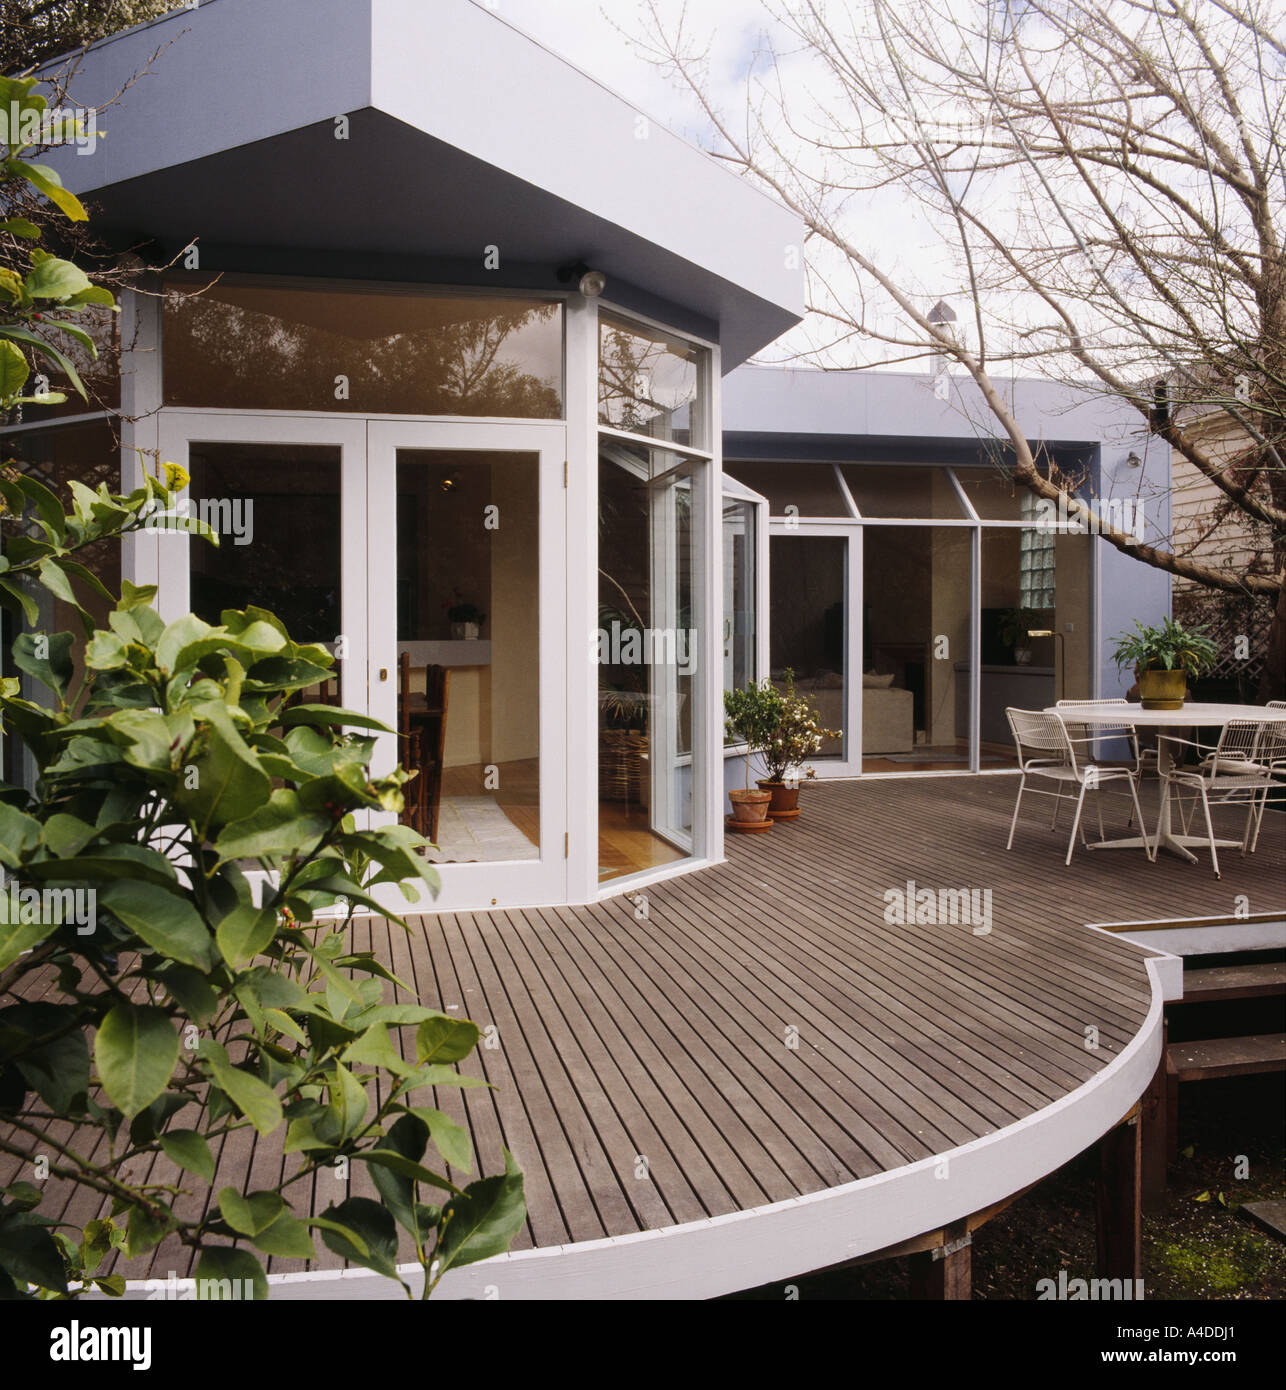 Raised Wooden Decked Terrace And Patio On Modern Single Story Townhouse  With Glass Doors